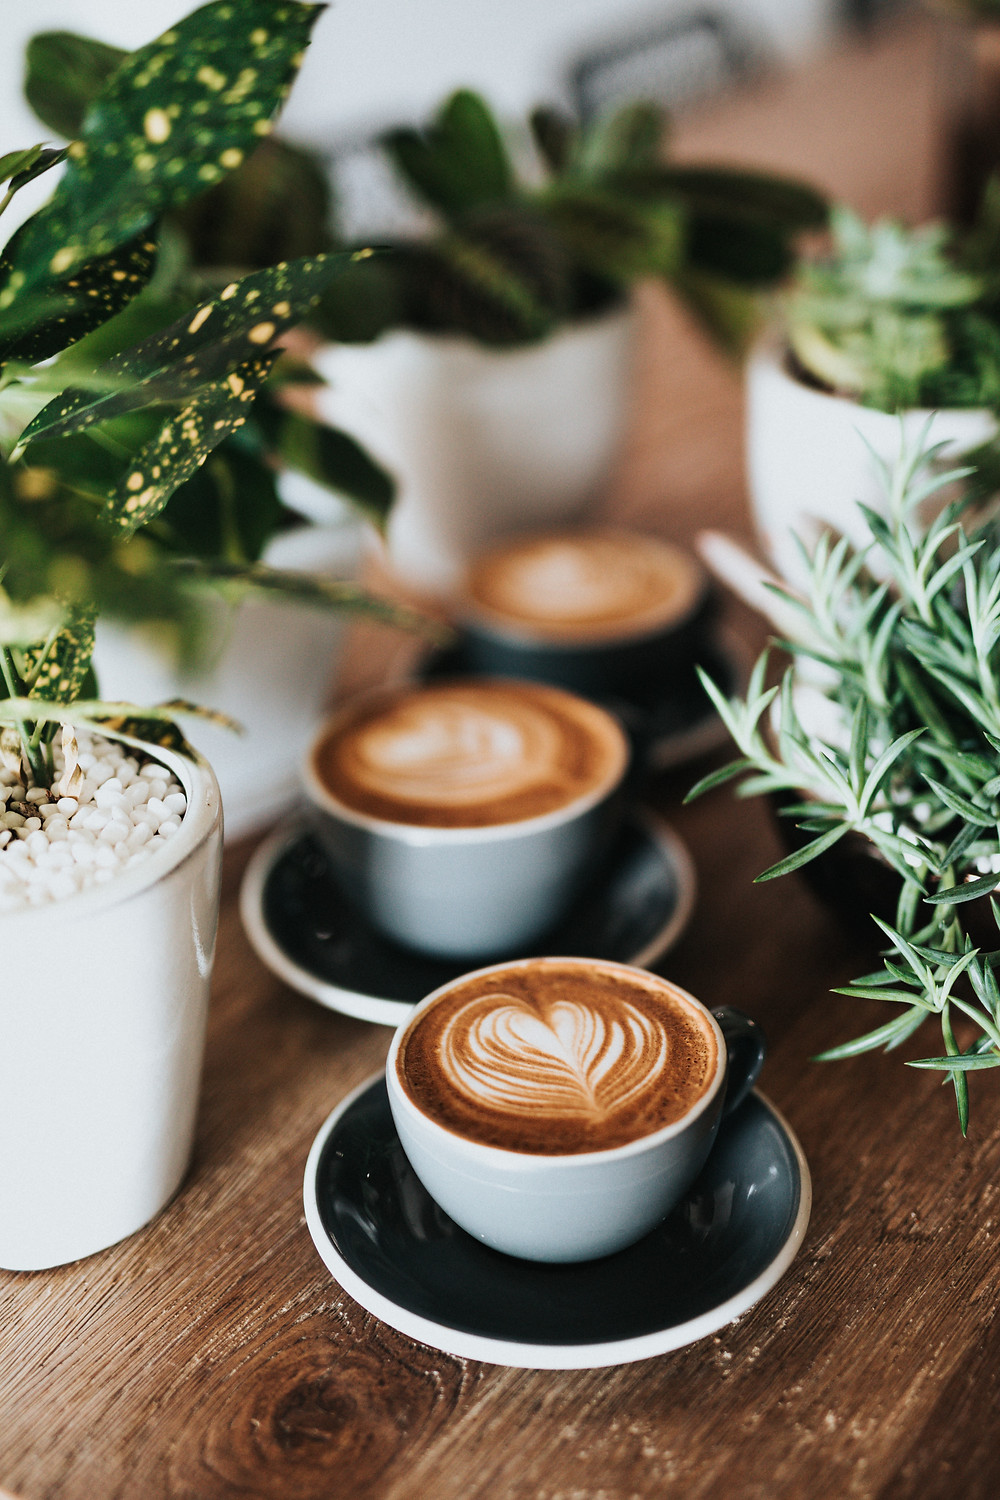 Coffee and plants on a table